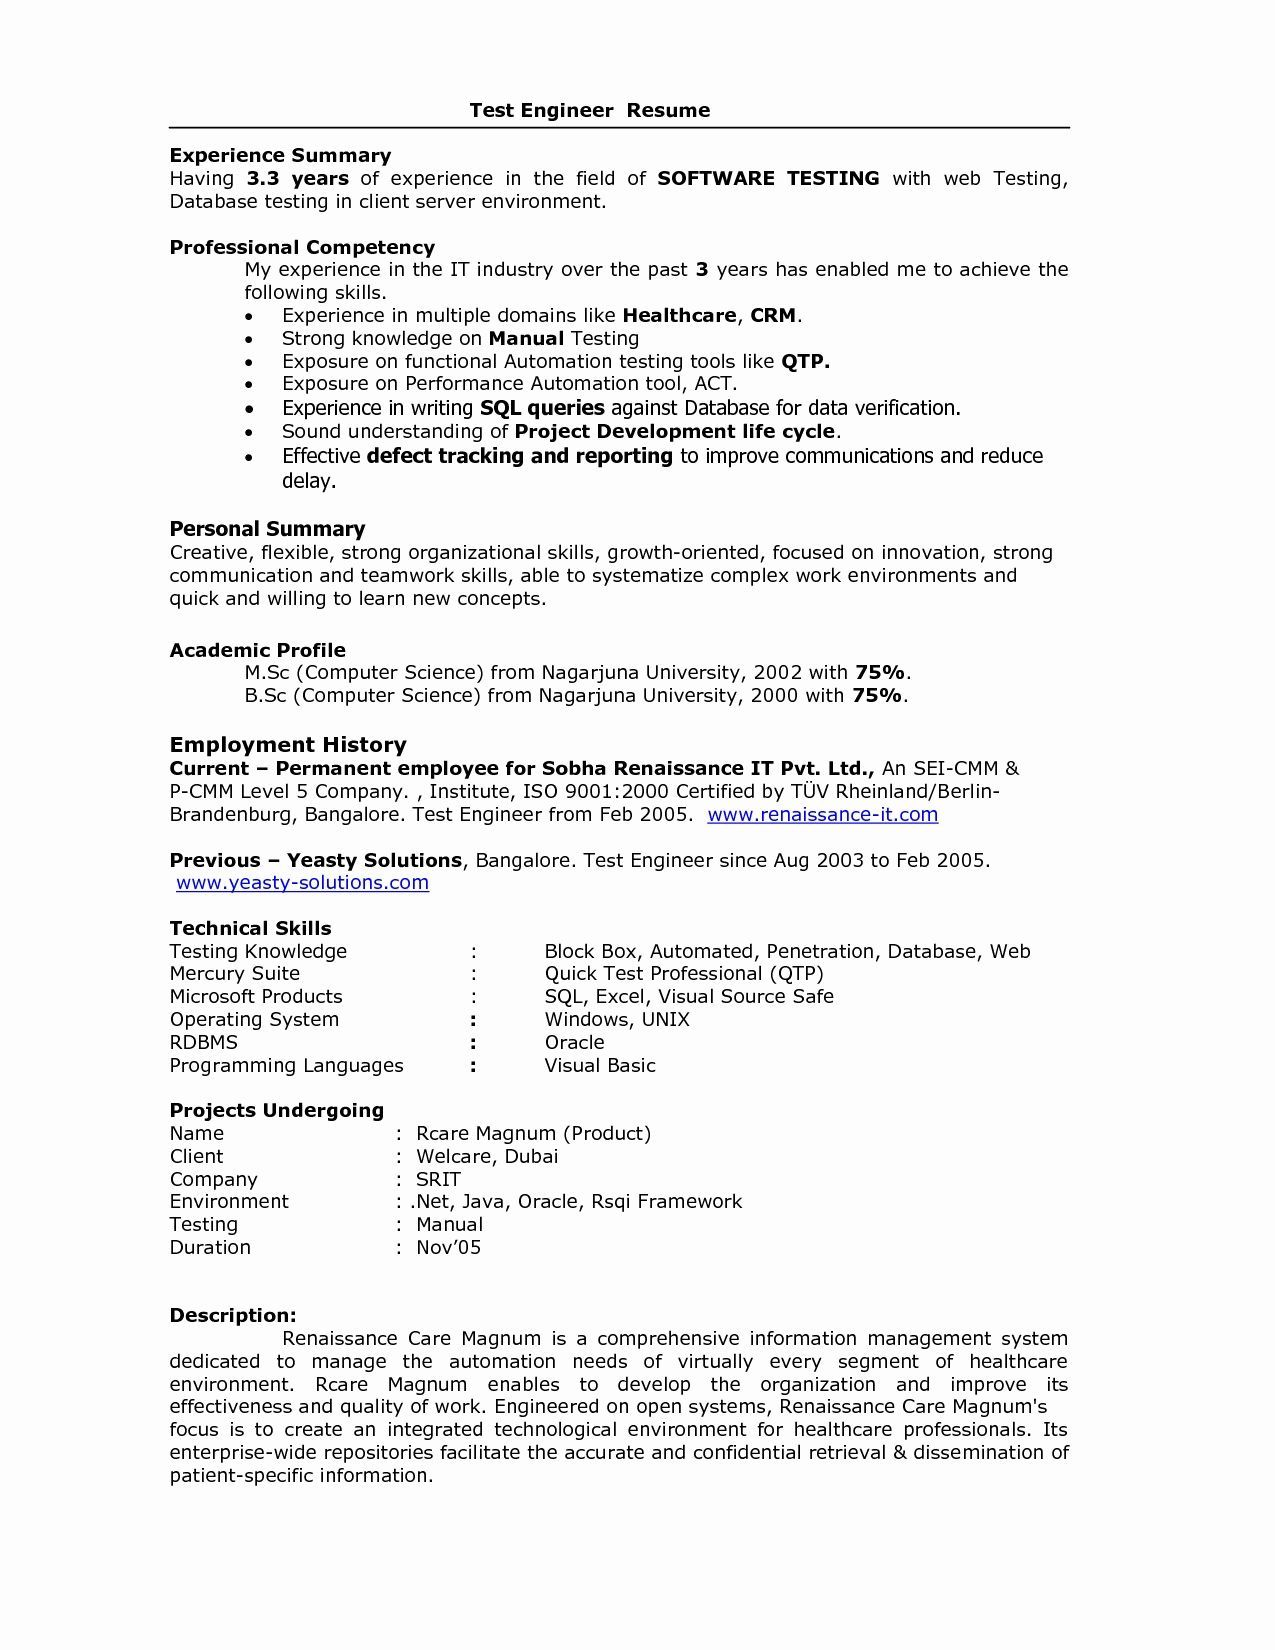 resume format for years experience in testing best software sample experienced test Resume Sample Resume For Experienced Test Engineer